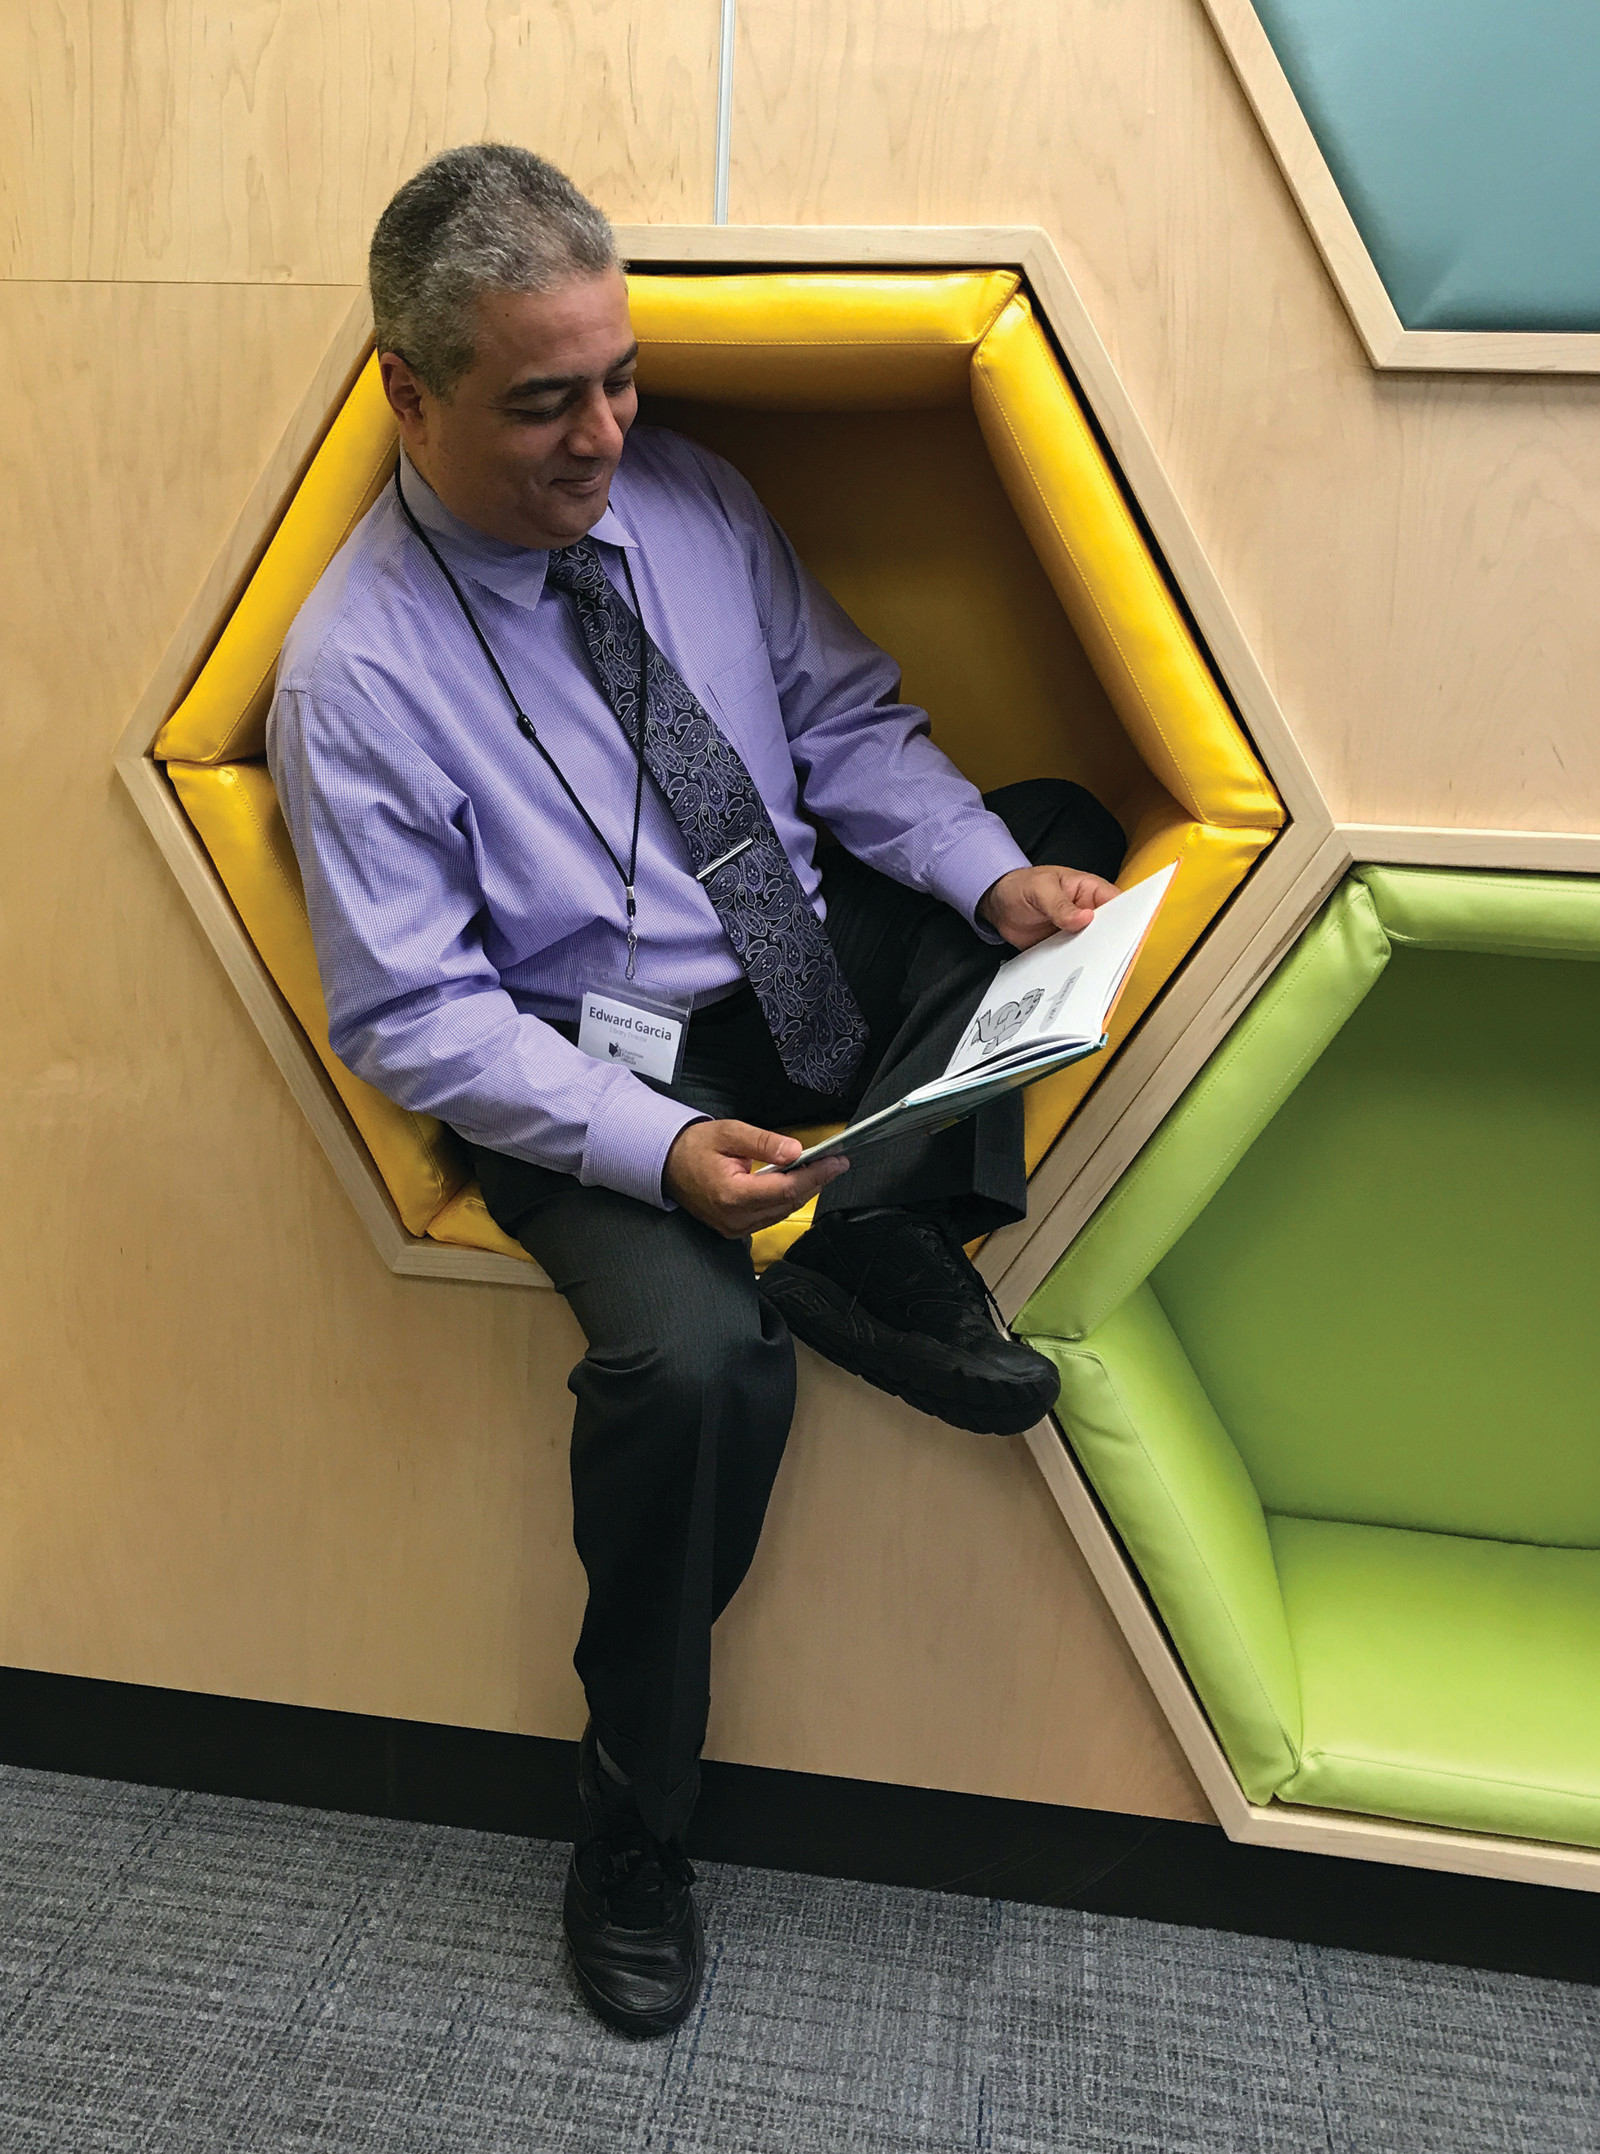 EVERYONE LOVES THE HONEYCOMBS: Director of Cranston Libraries Ed Garcia was caught taking a reading break in the new wall of honeycombs.